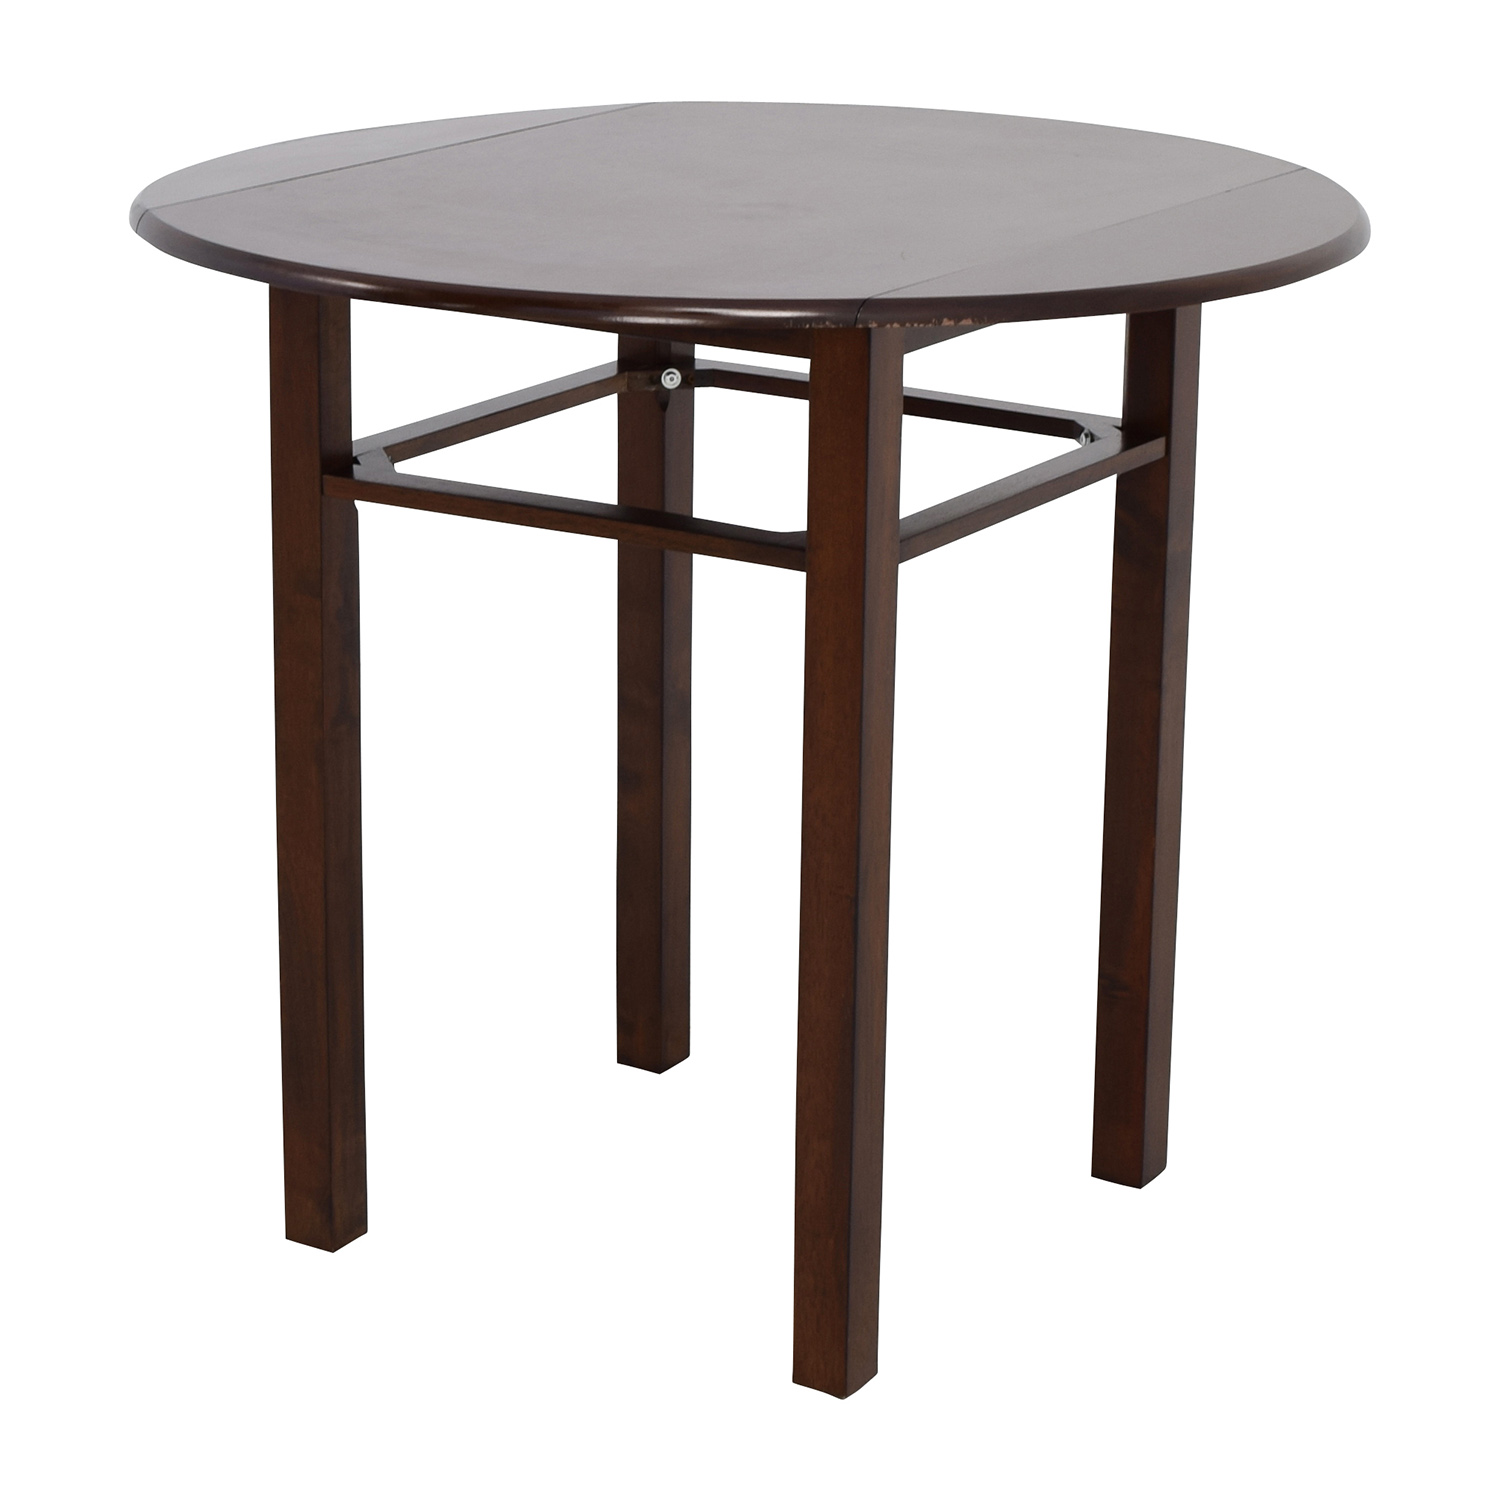 80 off whalen whalen round drop leaf dining table tables for Round drop leaf dining table